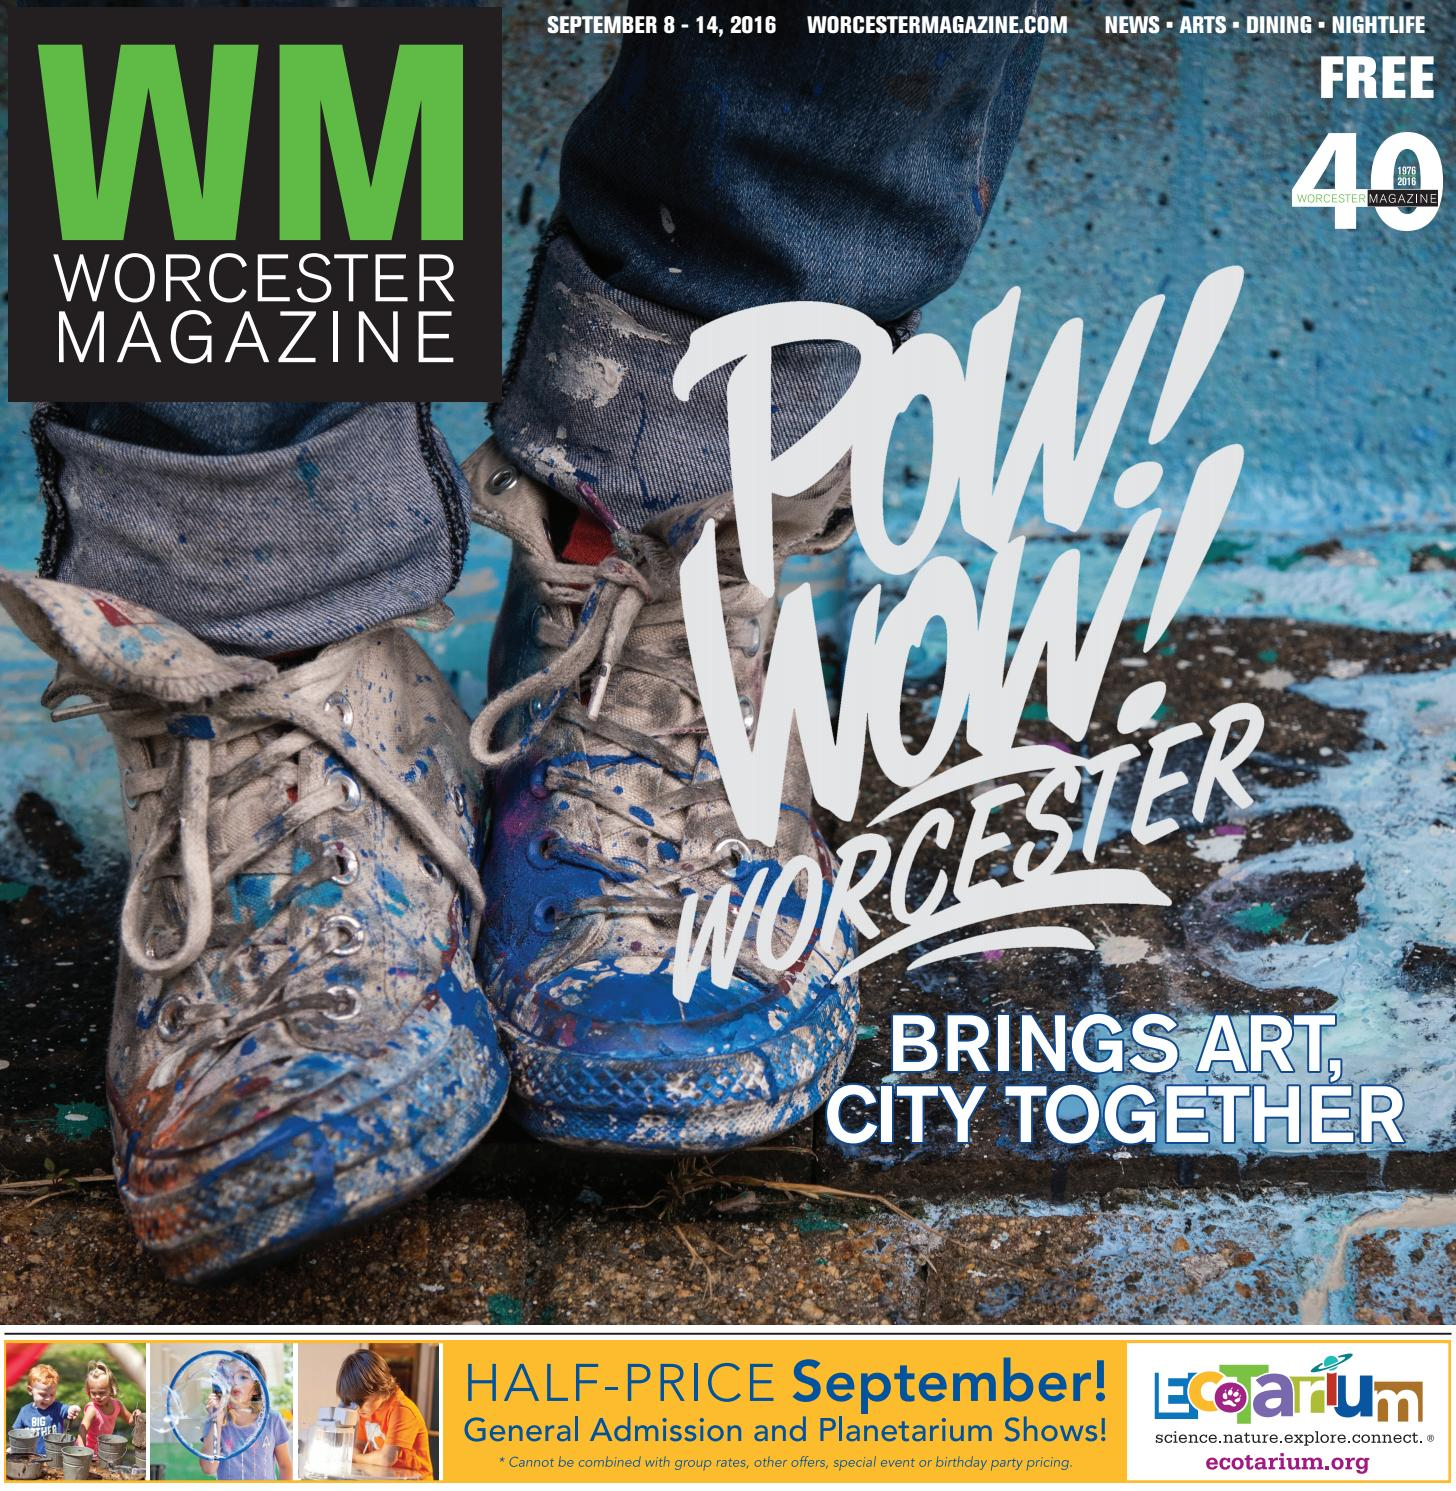 Worcester Magazine September 8 - 14, 2016 by Worcester Magazine - issuu